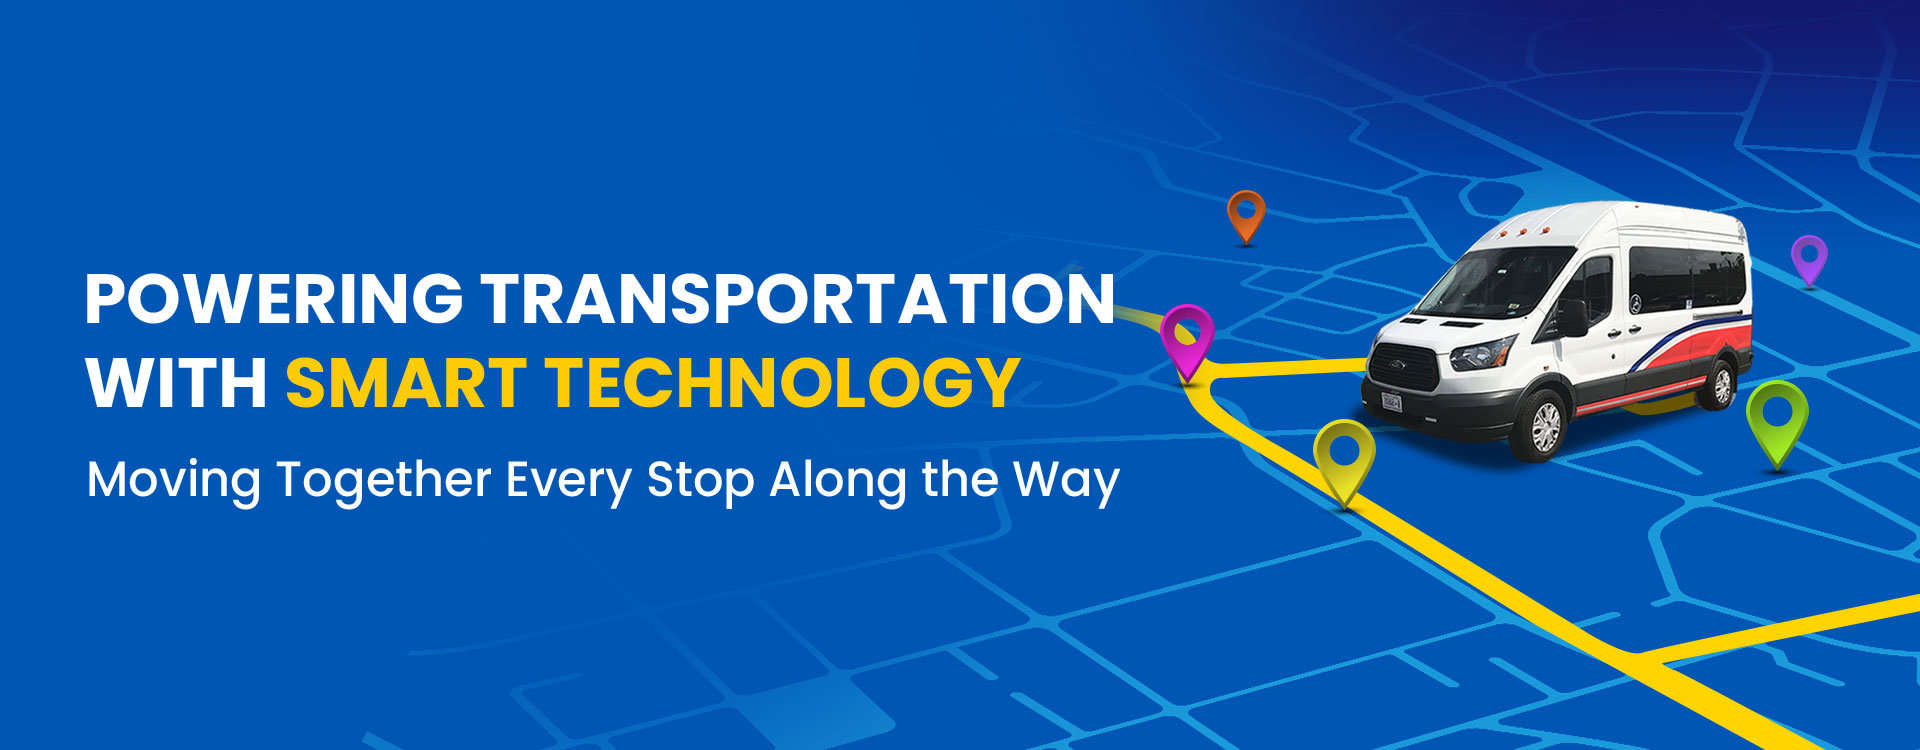 Powering Transportation with Smart Technology